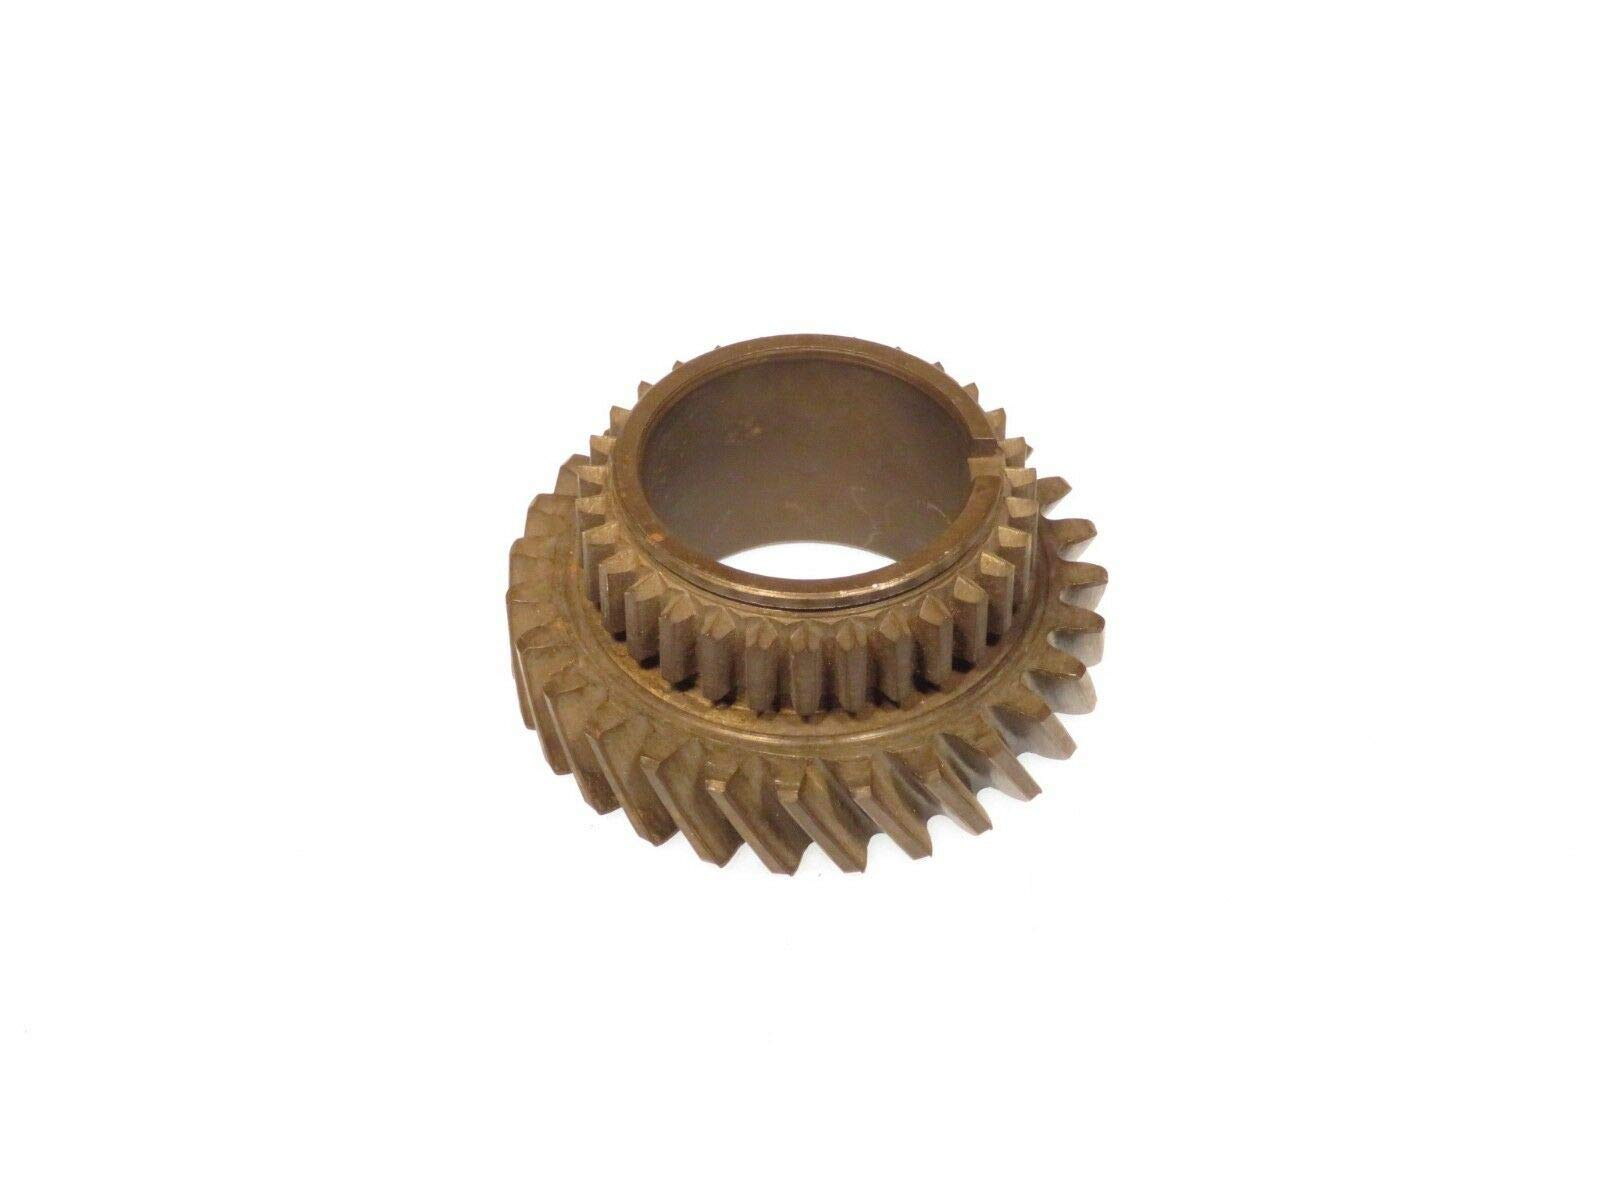 EPC Gearbox 2nd Gear Fiat Brand Fits Fiat 124 Spider Coupe Sedan & Wagon 4155236